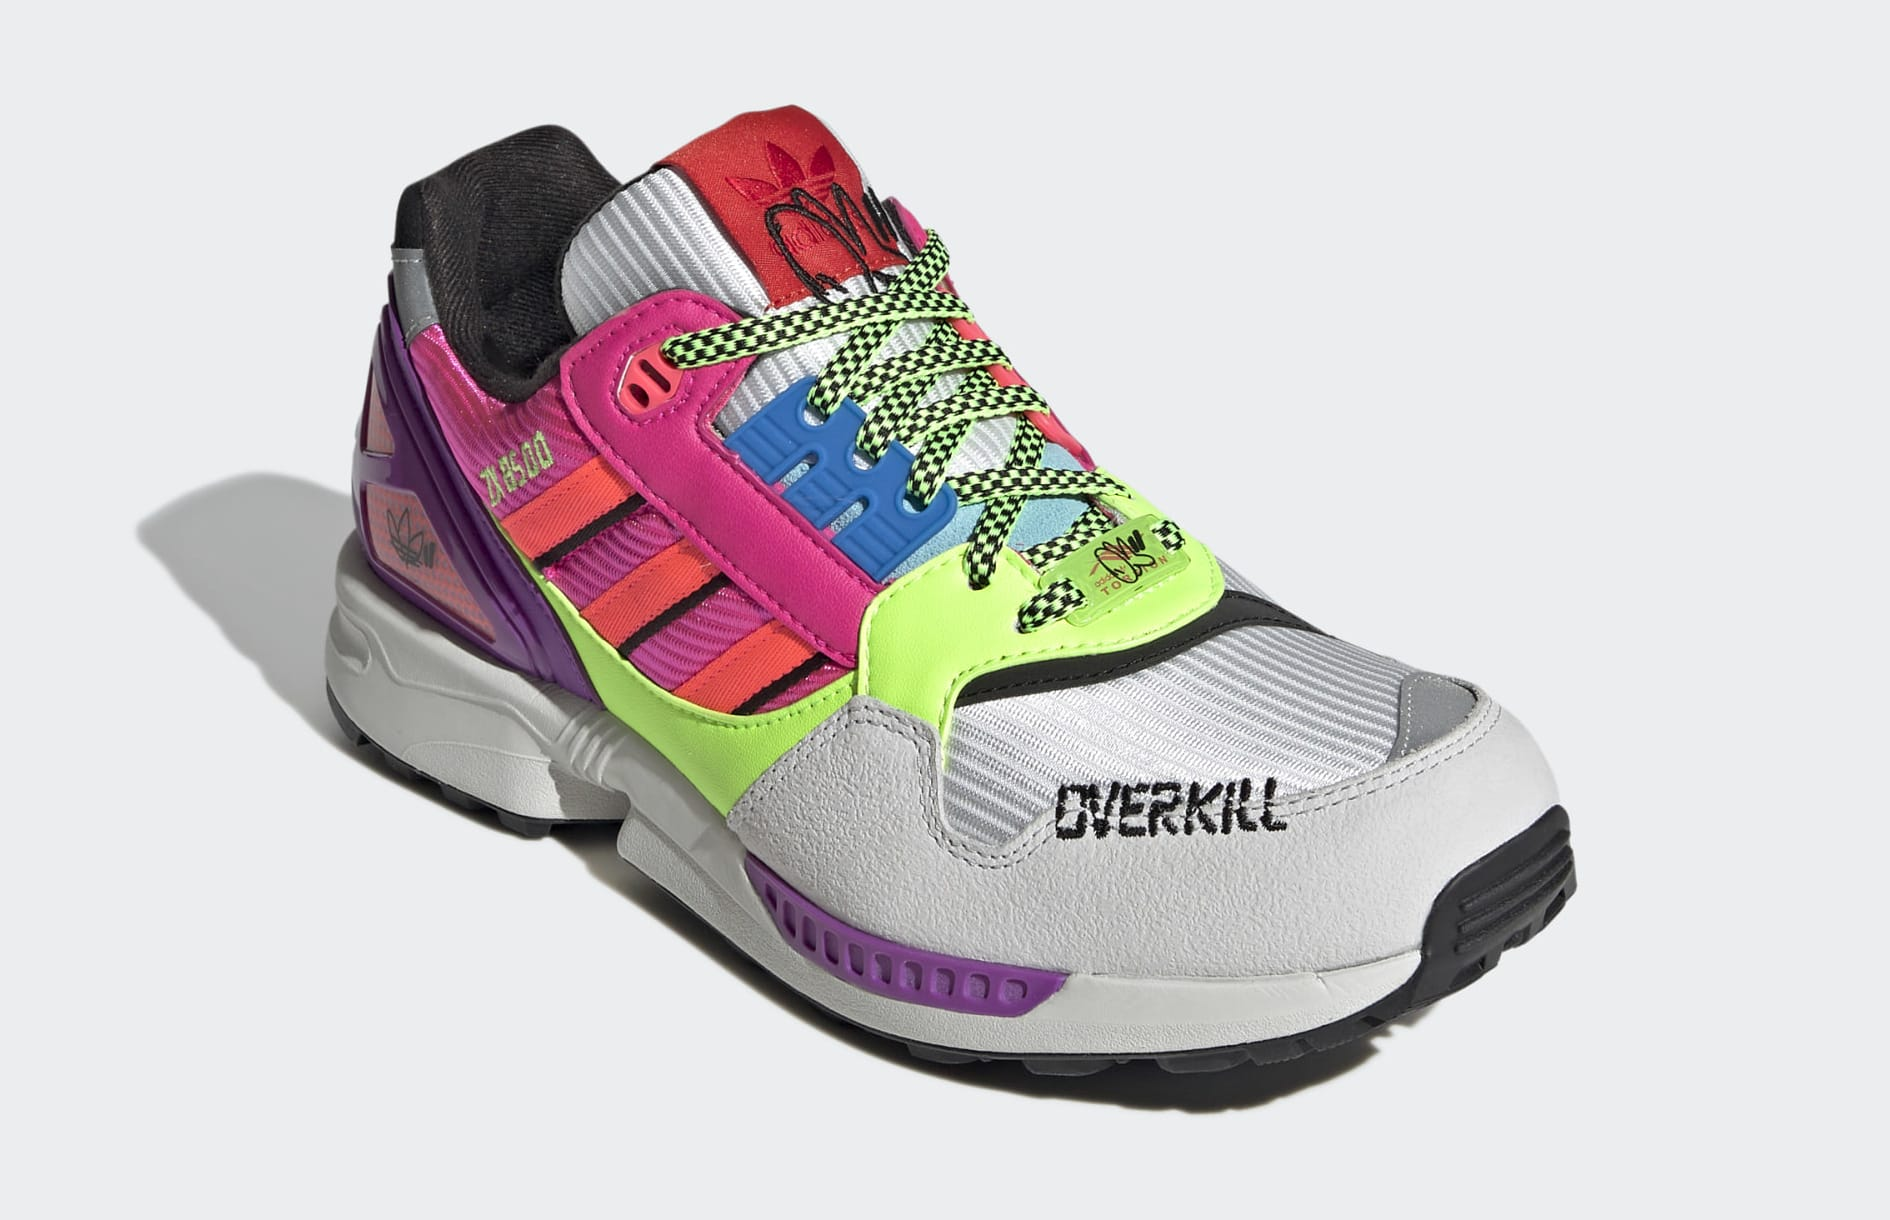 Overkill x Adidas ZX 8500 Medial Front